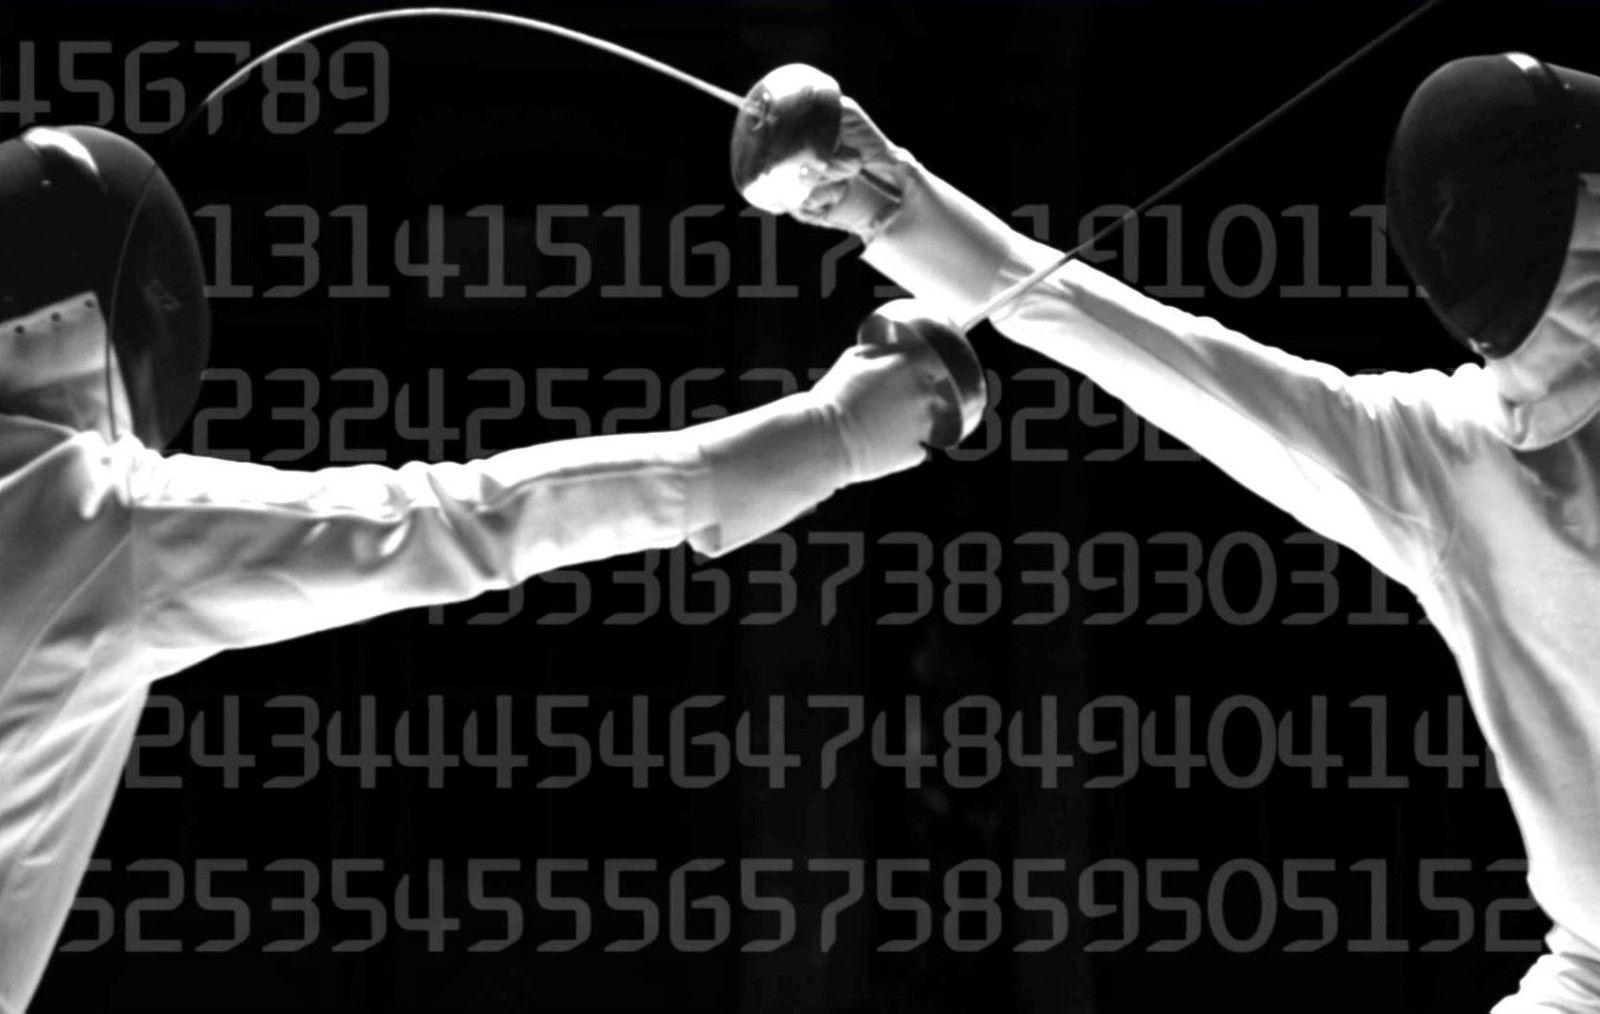 2018 Fencing/Sword Fighting Olympic Combat Sport Art Art Silk Print Poster  24x36inch60x90cm 016 From Chuy8988, &Price